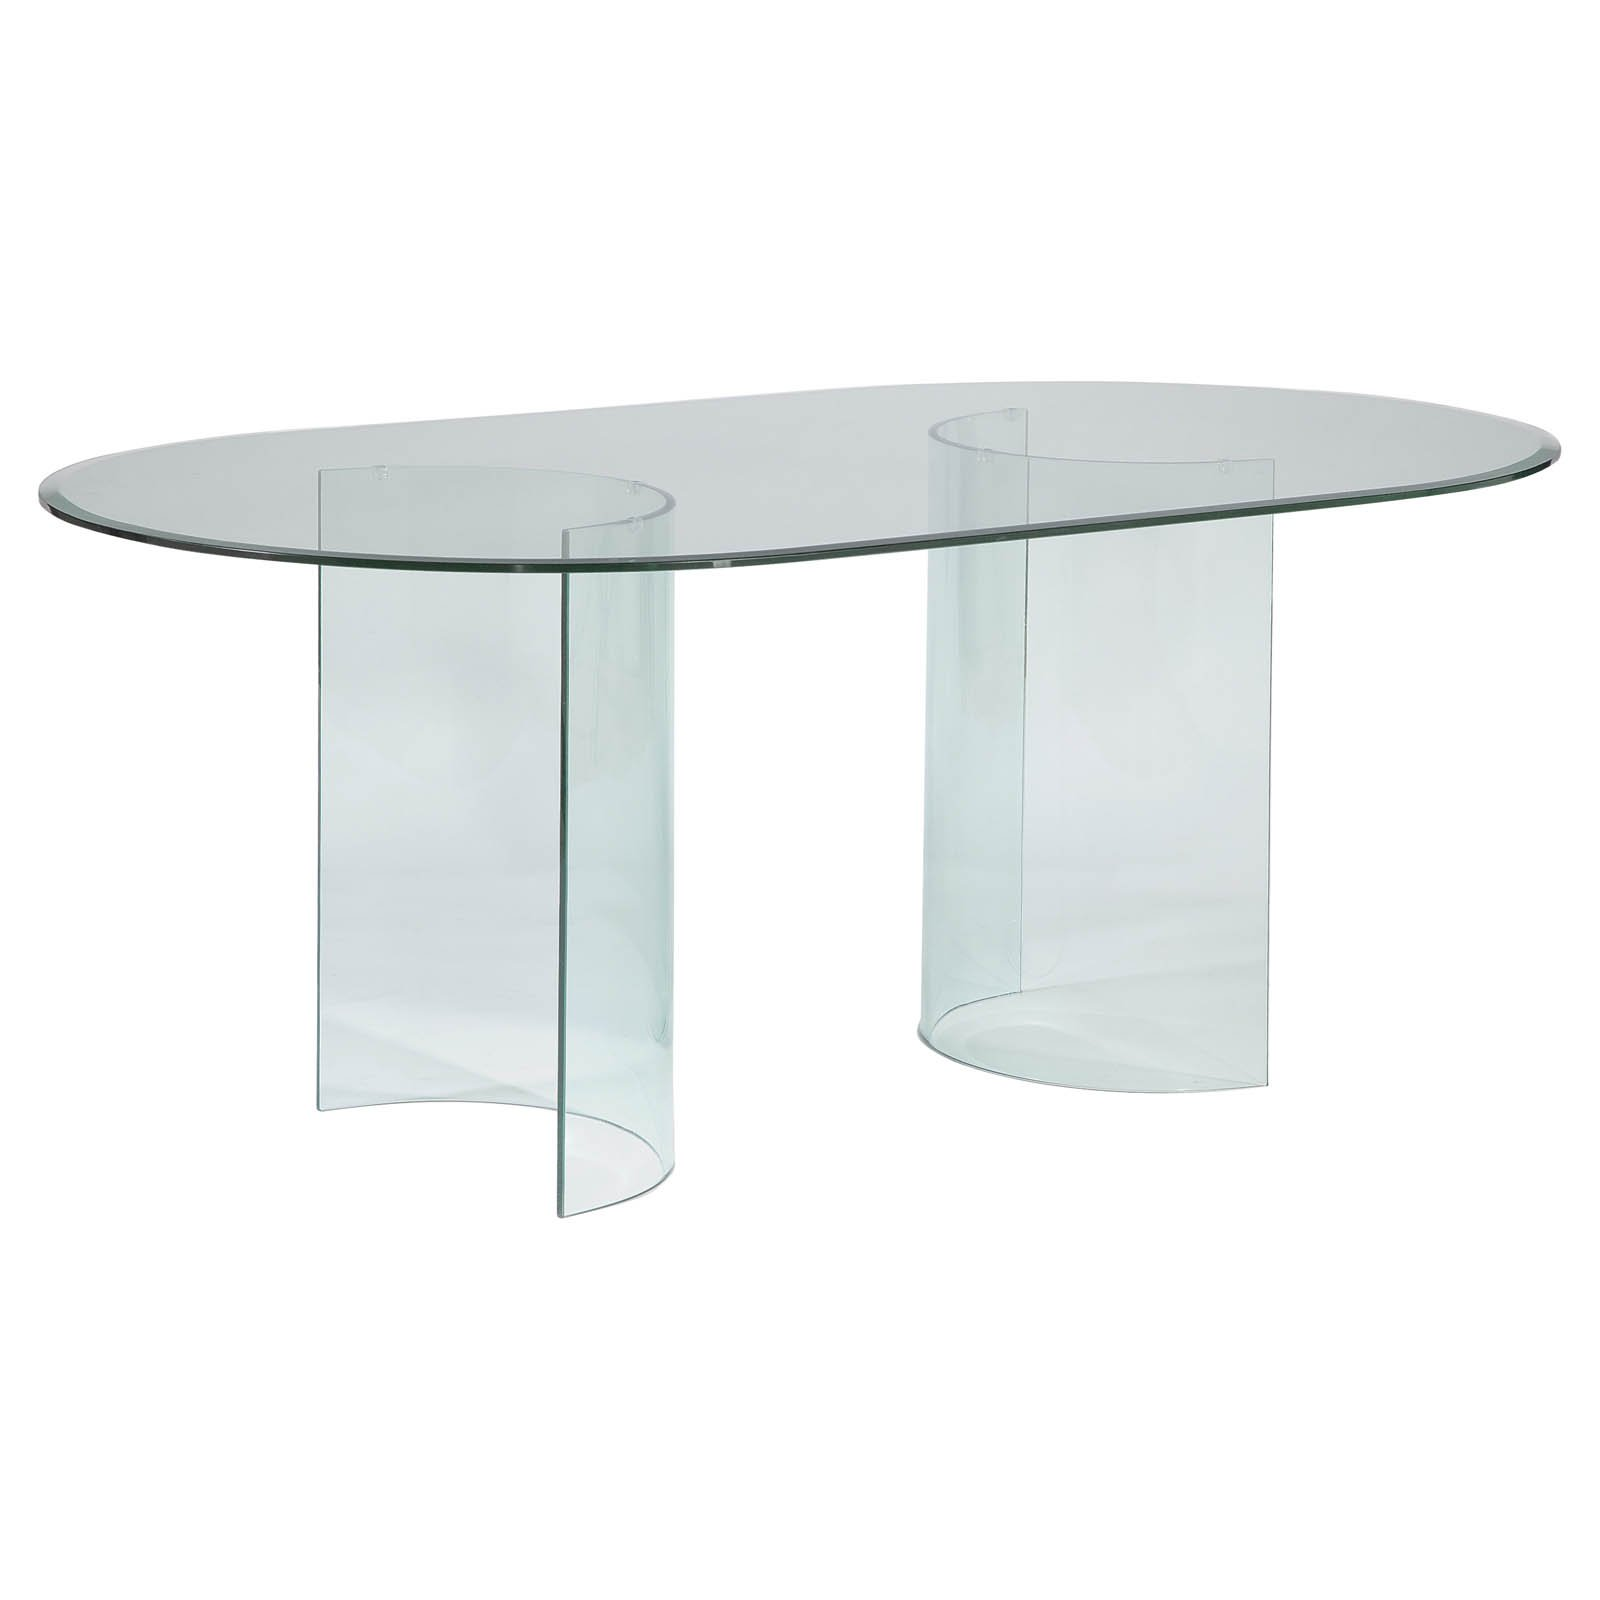 Chintaly Carmel Oval Dining Table With Glass Top Walmart Com